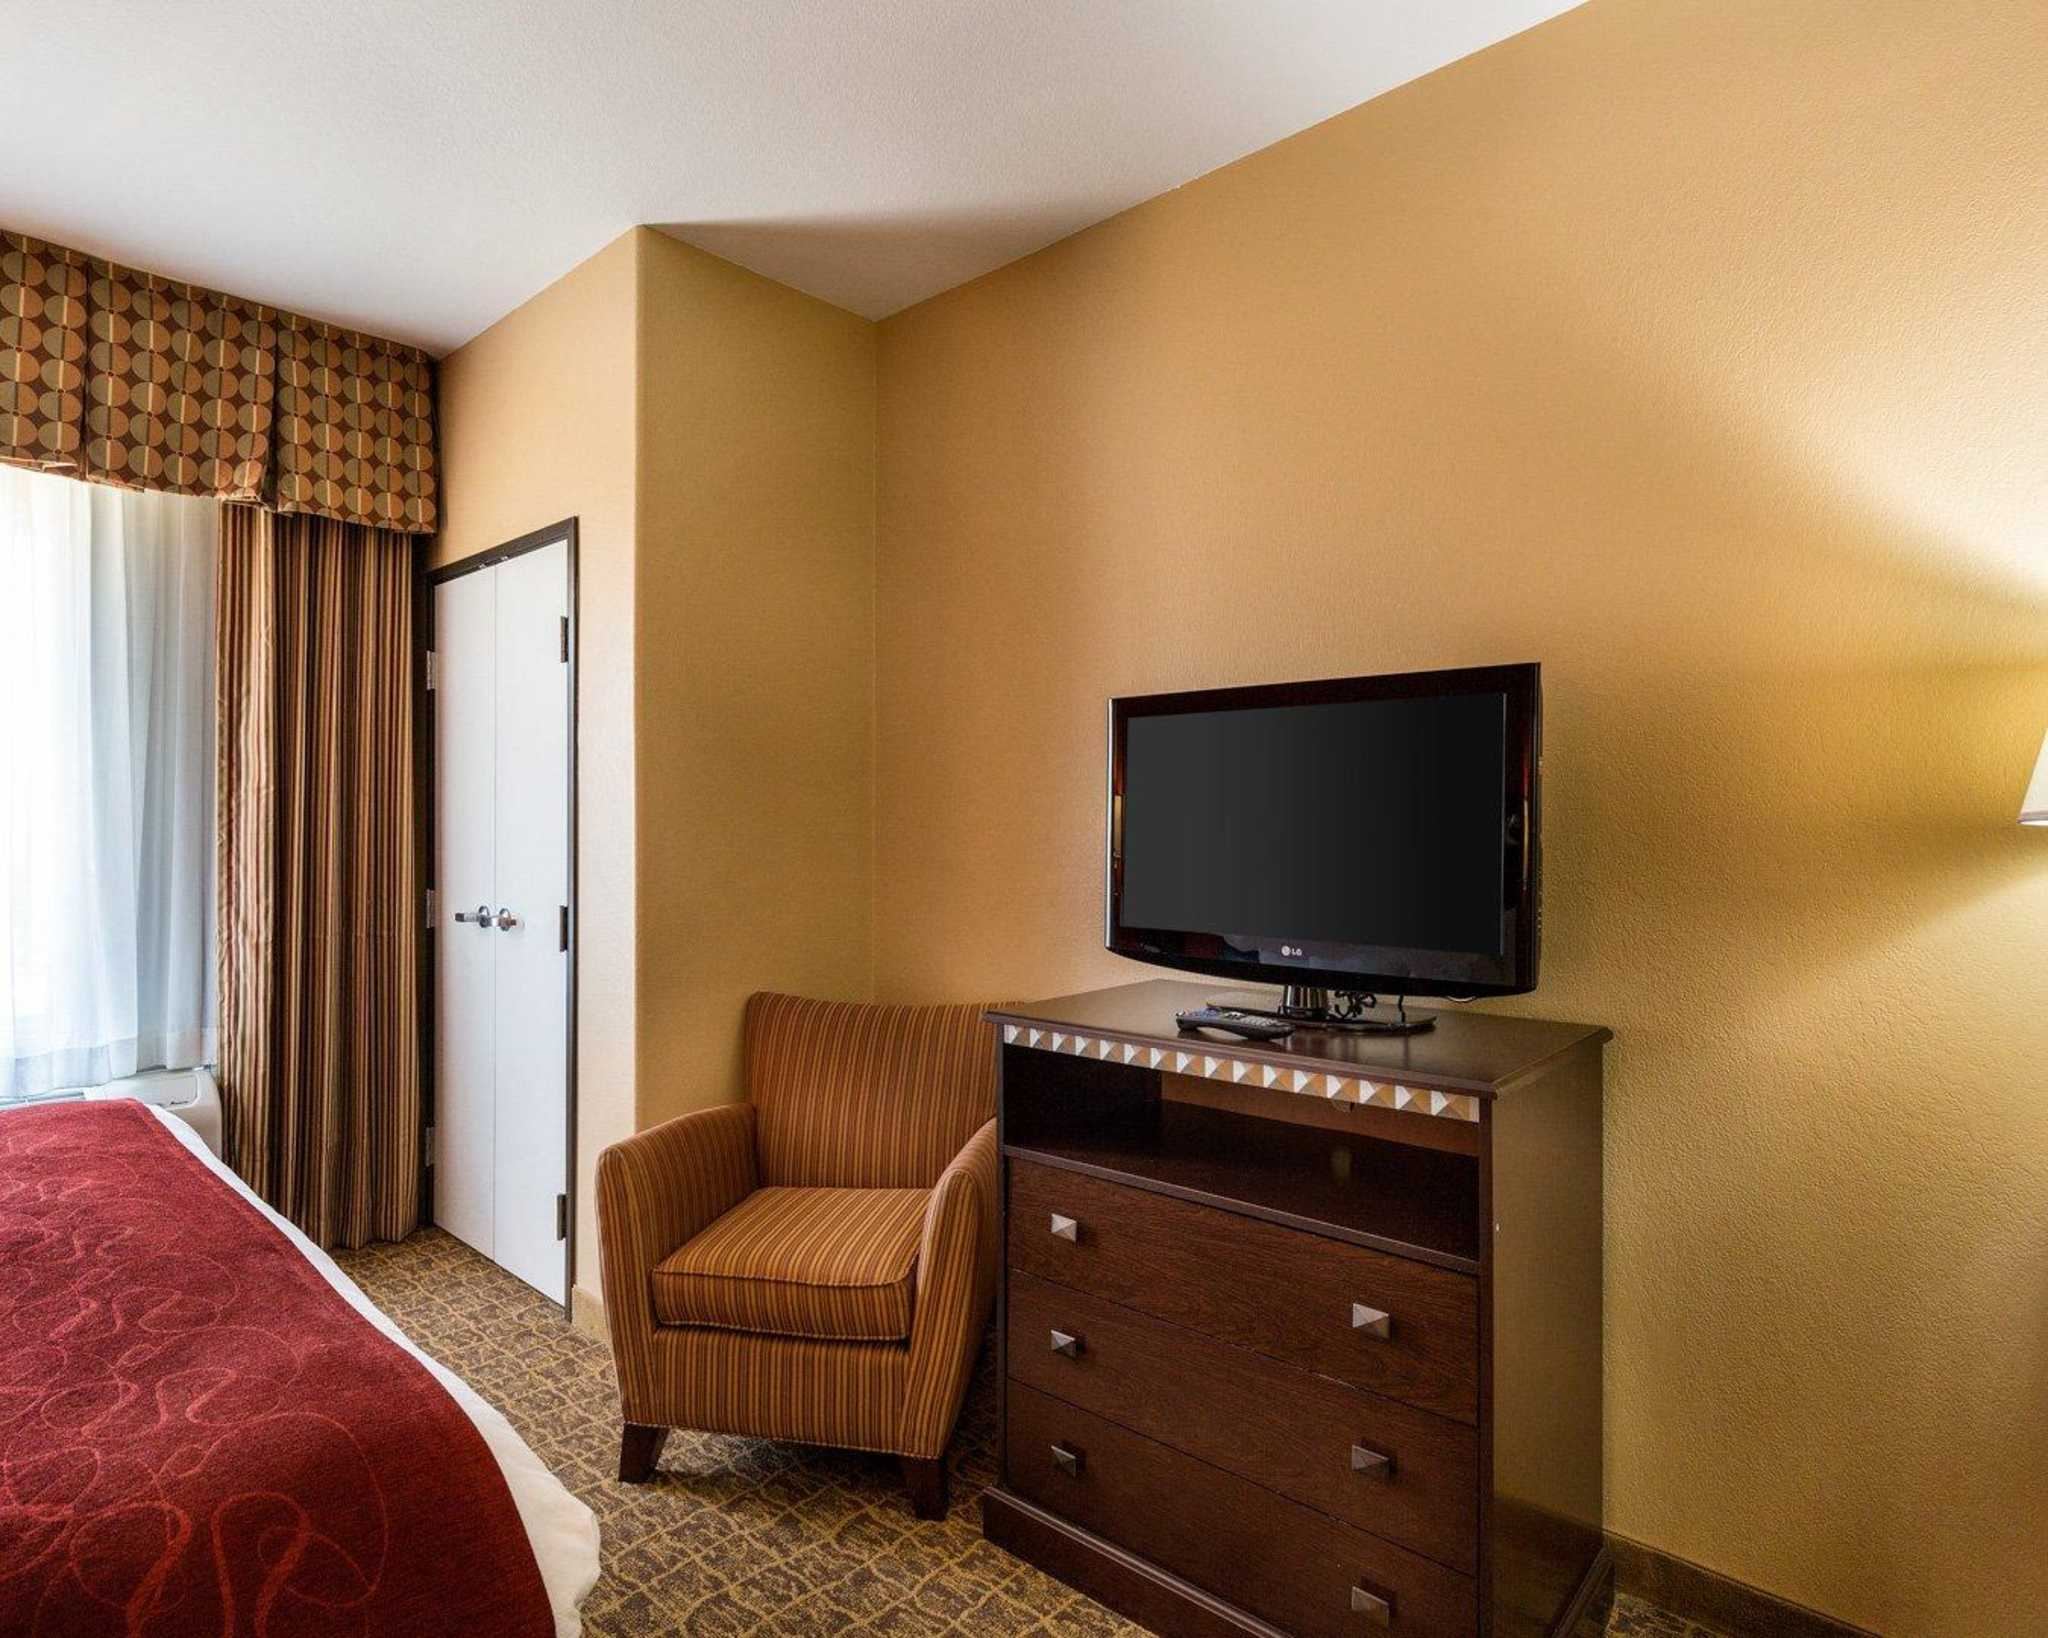 Comfort Suites Pearland - South Houston image 19